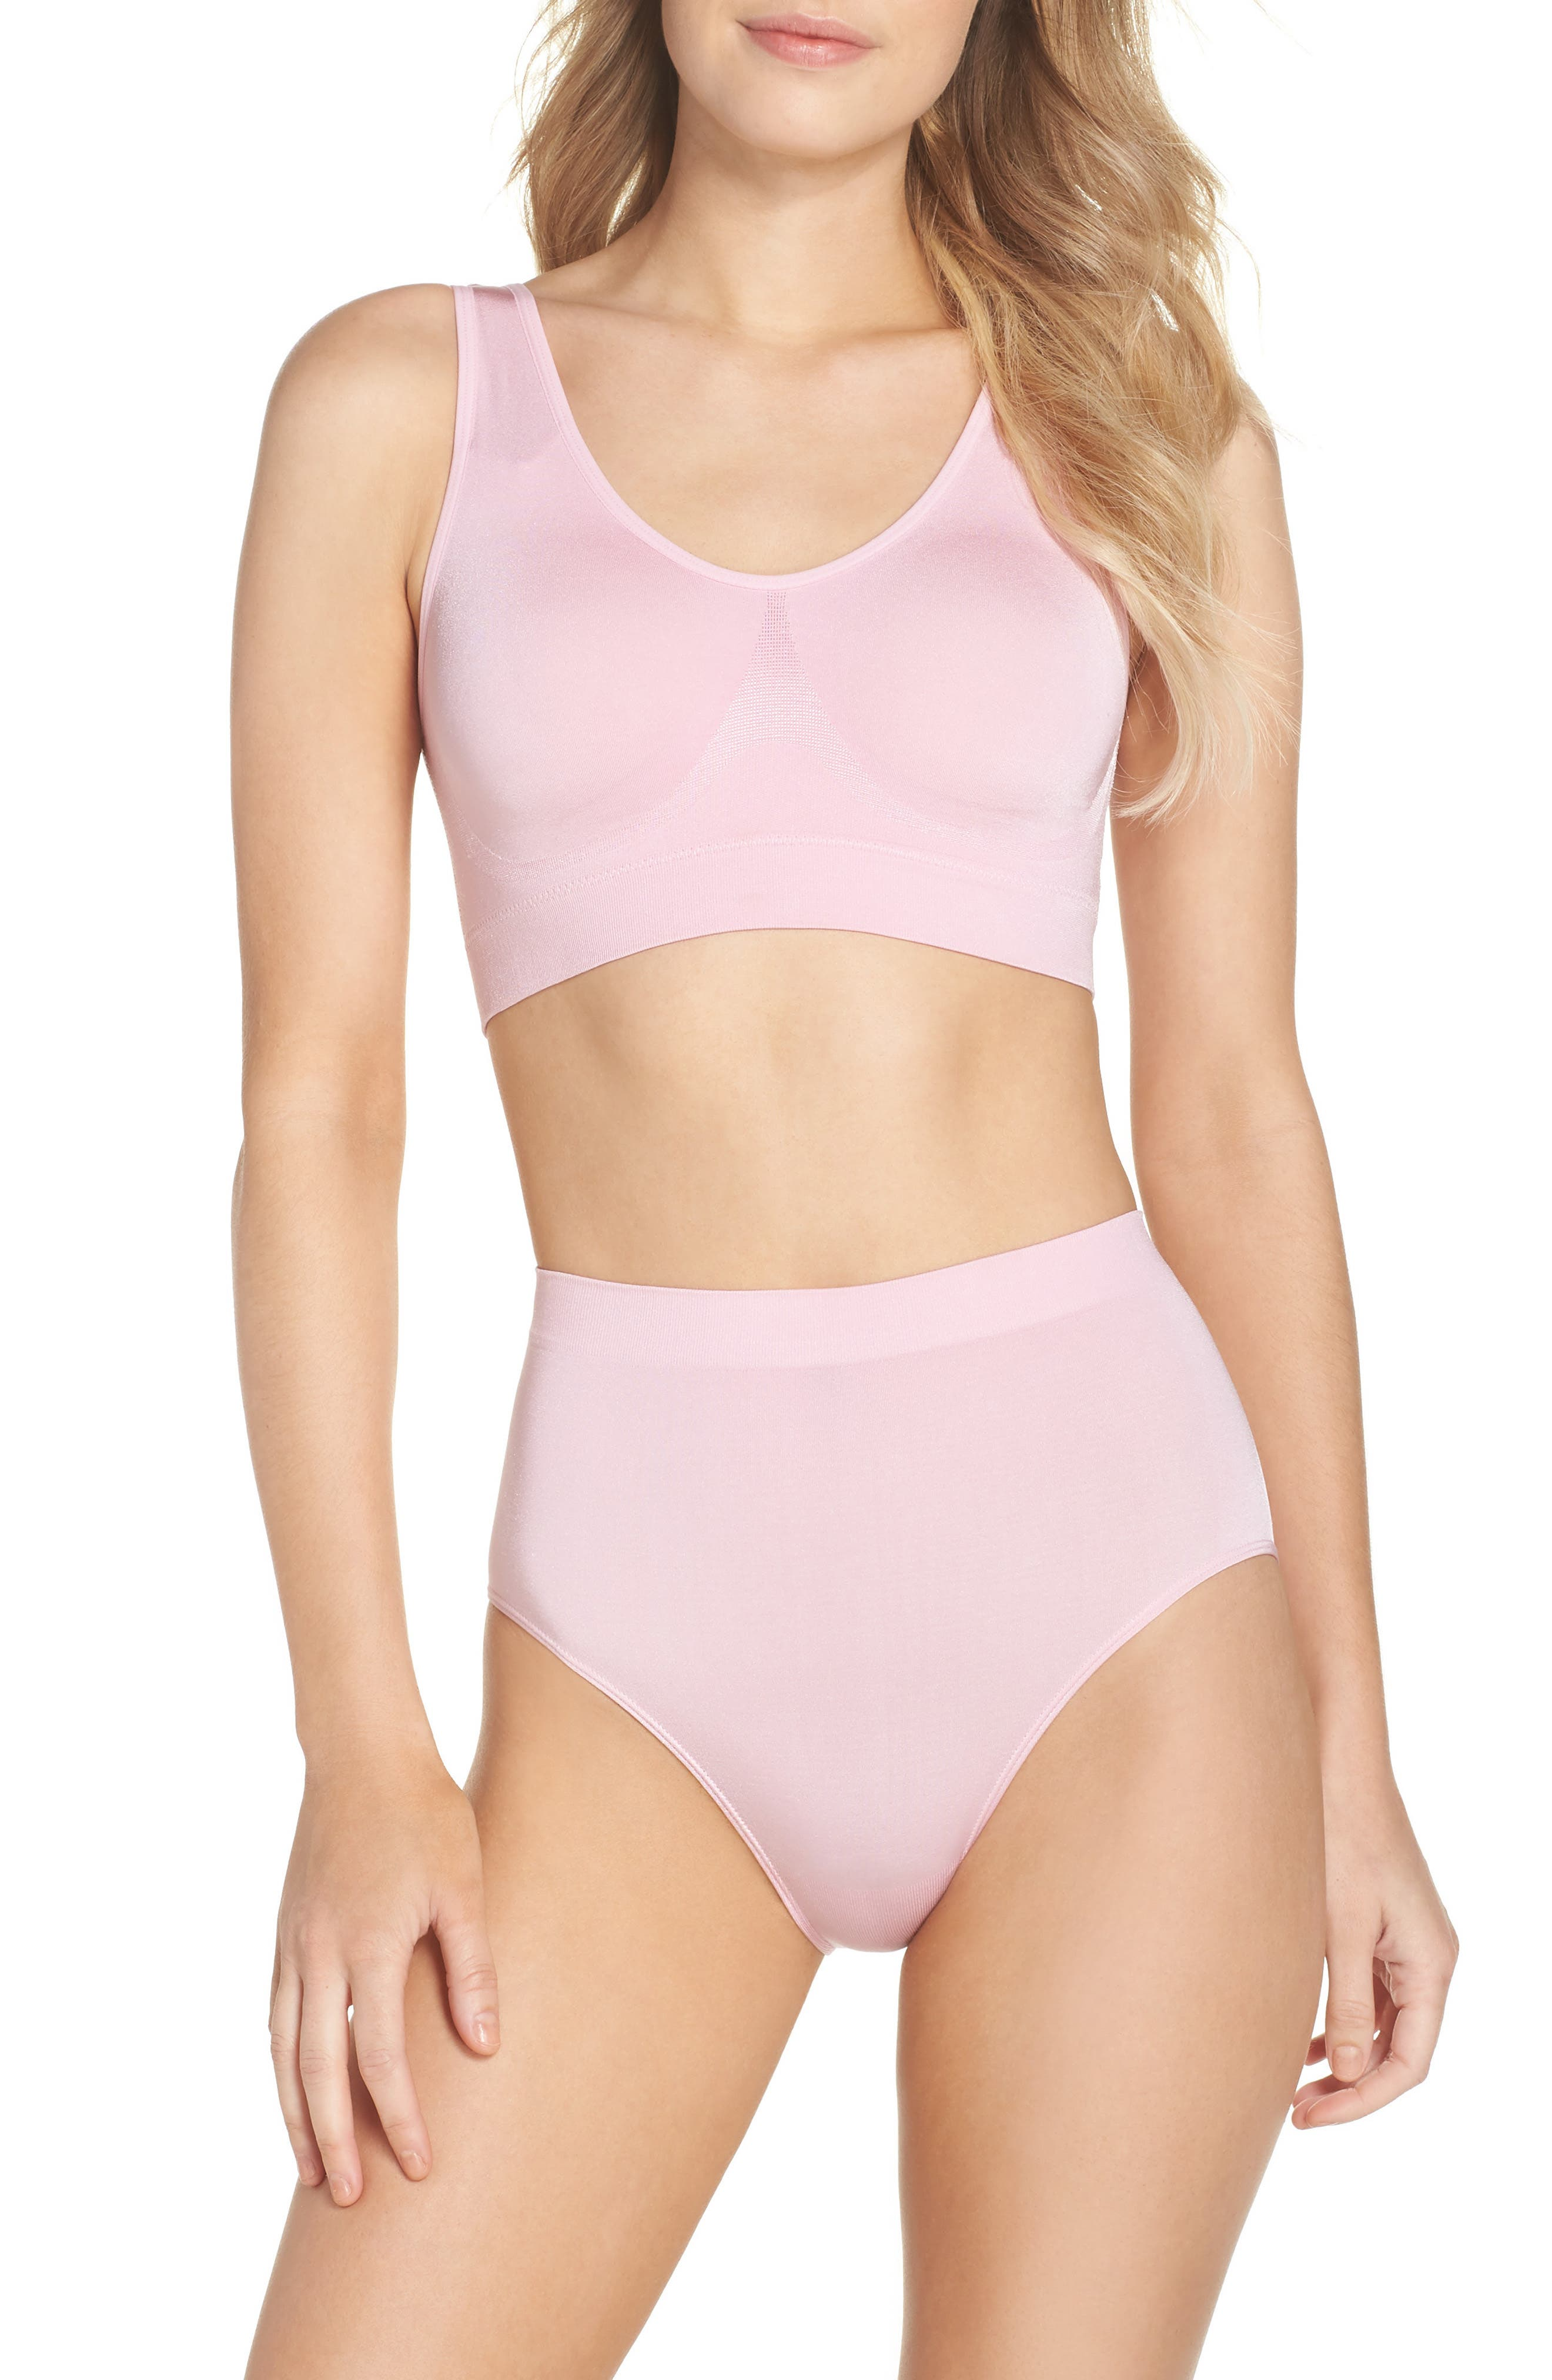 B Smooth Briefs,                             Alternate thumbnail 4, color,                             Cameo Pink